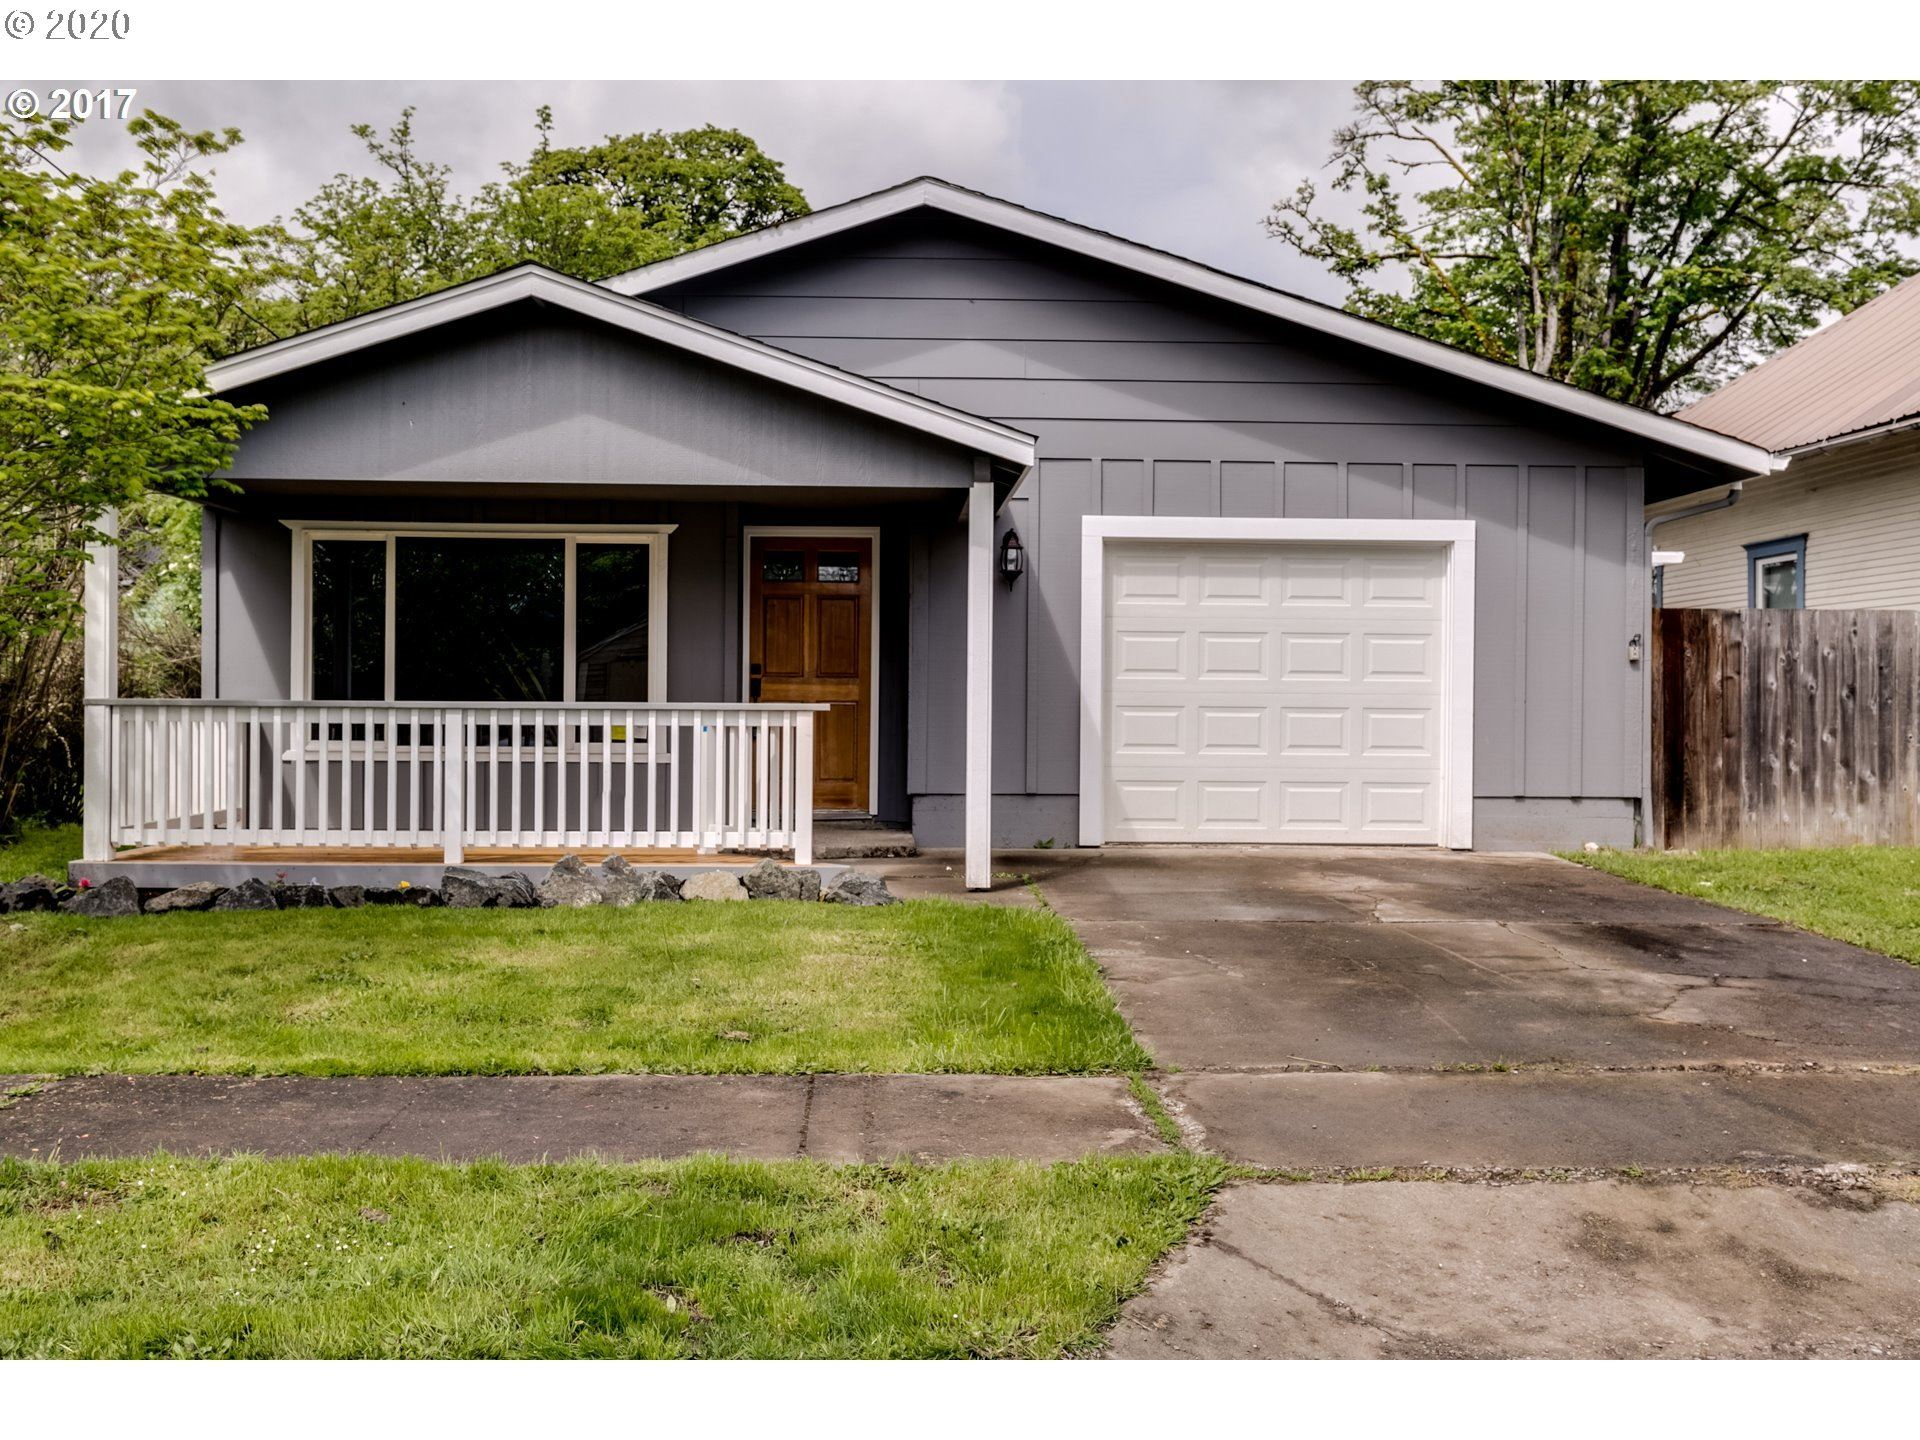 Photo for 191 N 3RD ST, Creswell, OR 97426 (MLS # 20076004)